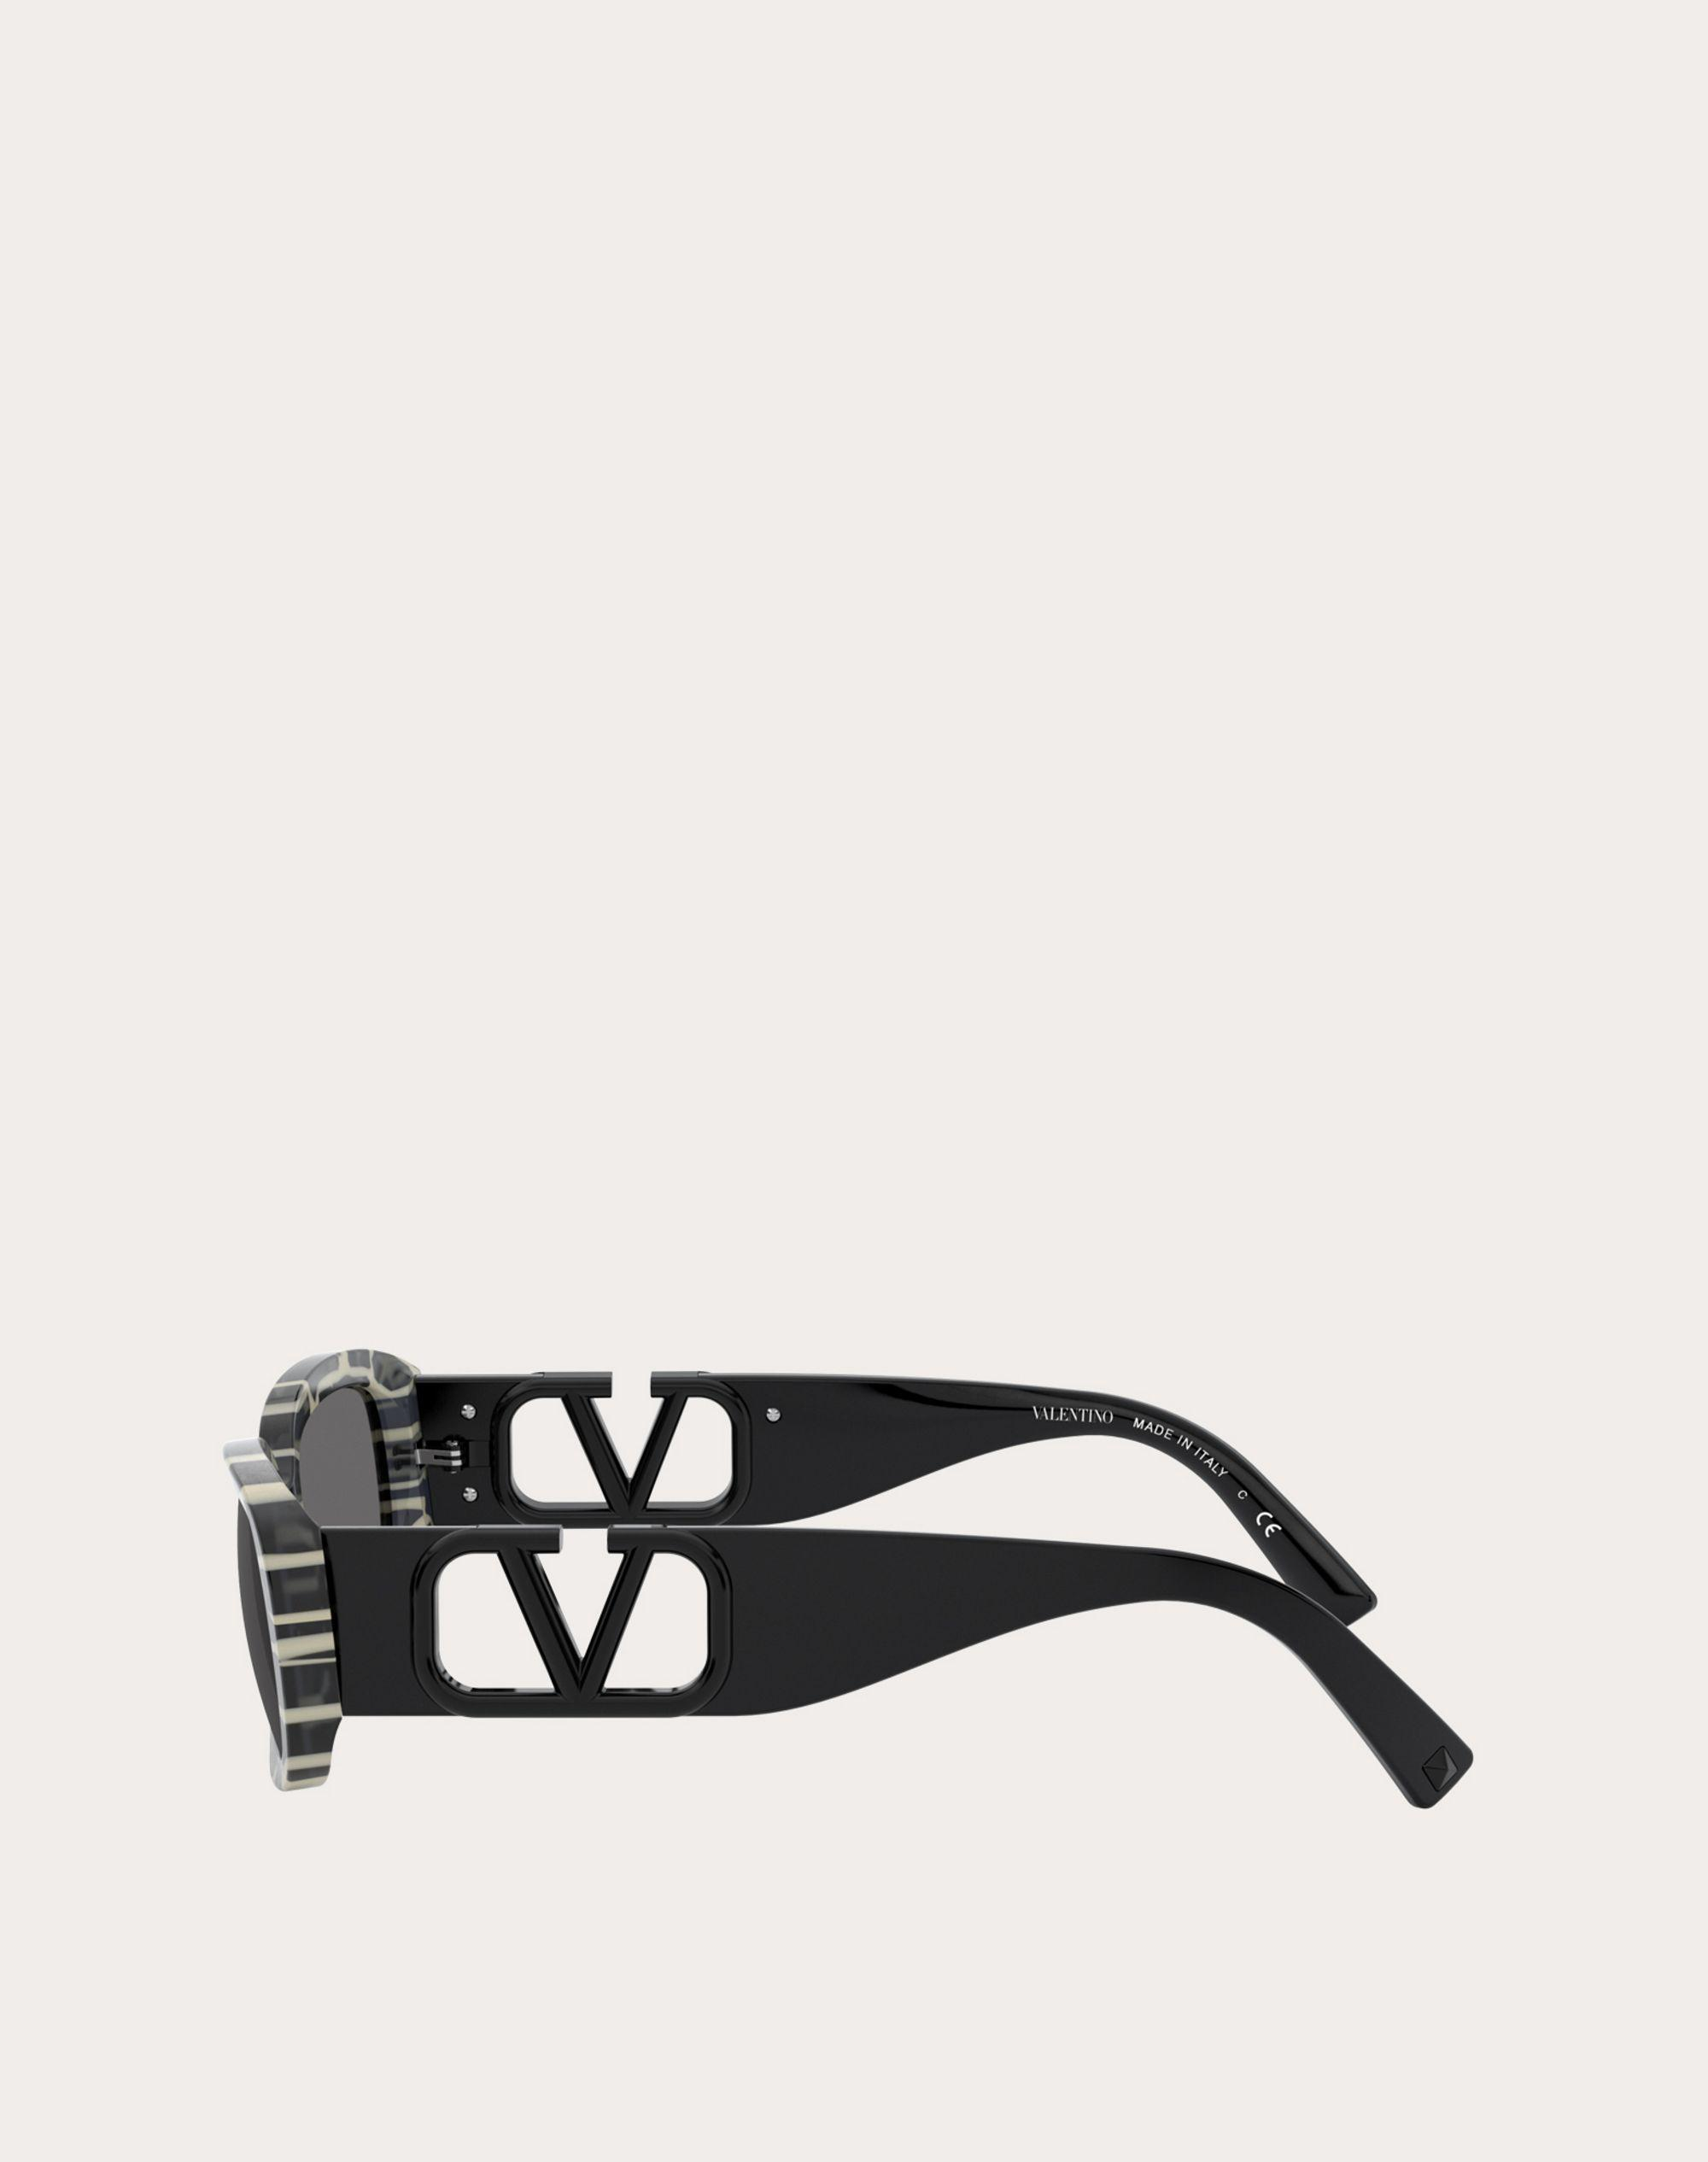 OVAL ACETATE FRAME WITH Vlogo Signature 2